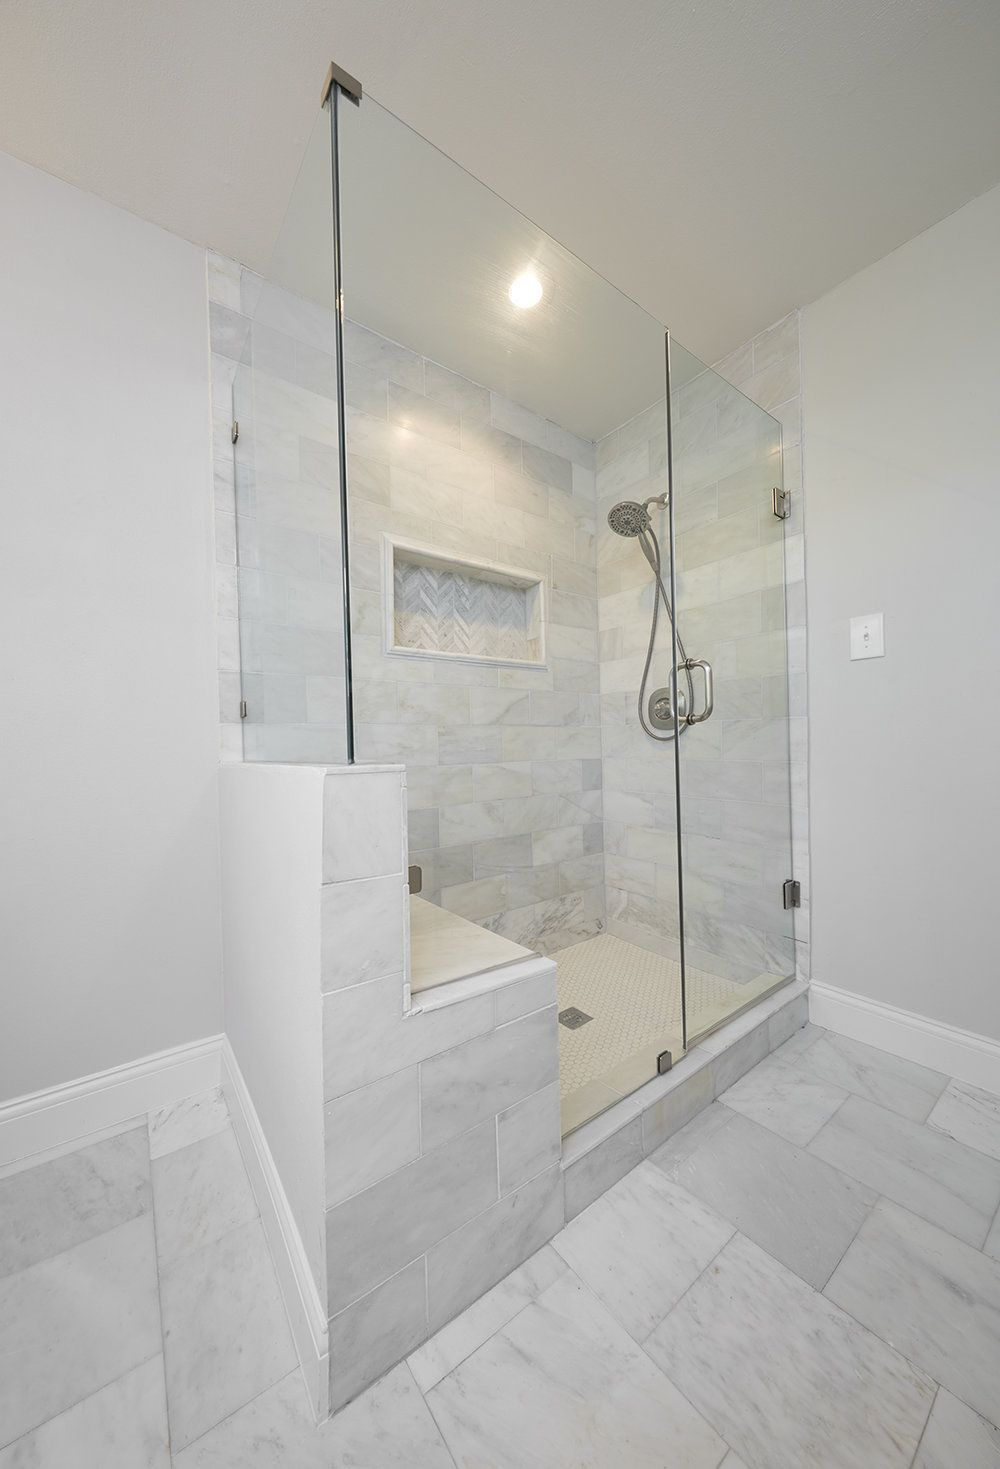 Bathroom Renovation Ideas: bathroom remodel cost, bathroom ideas for ...